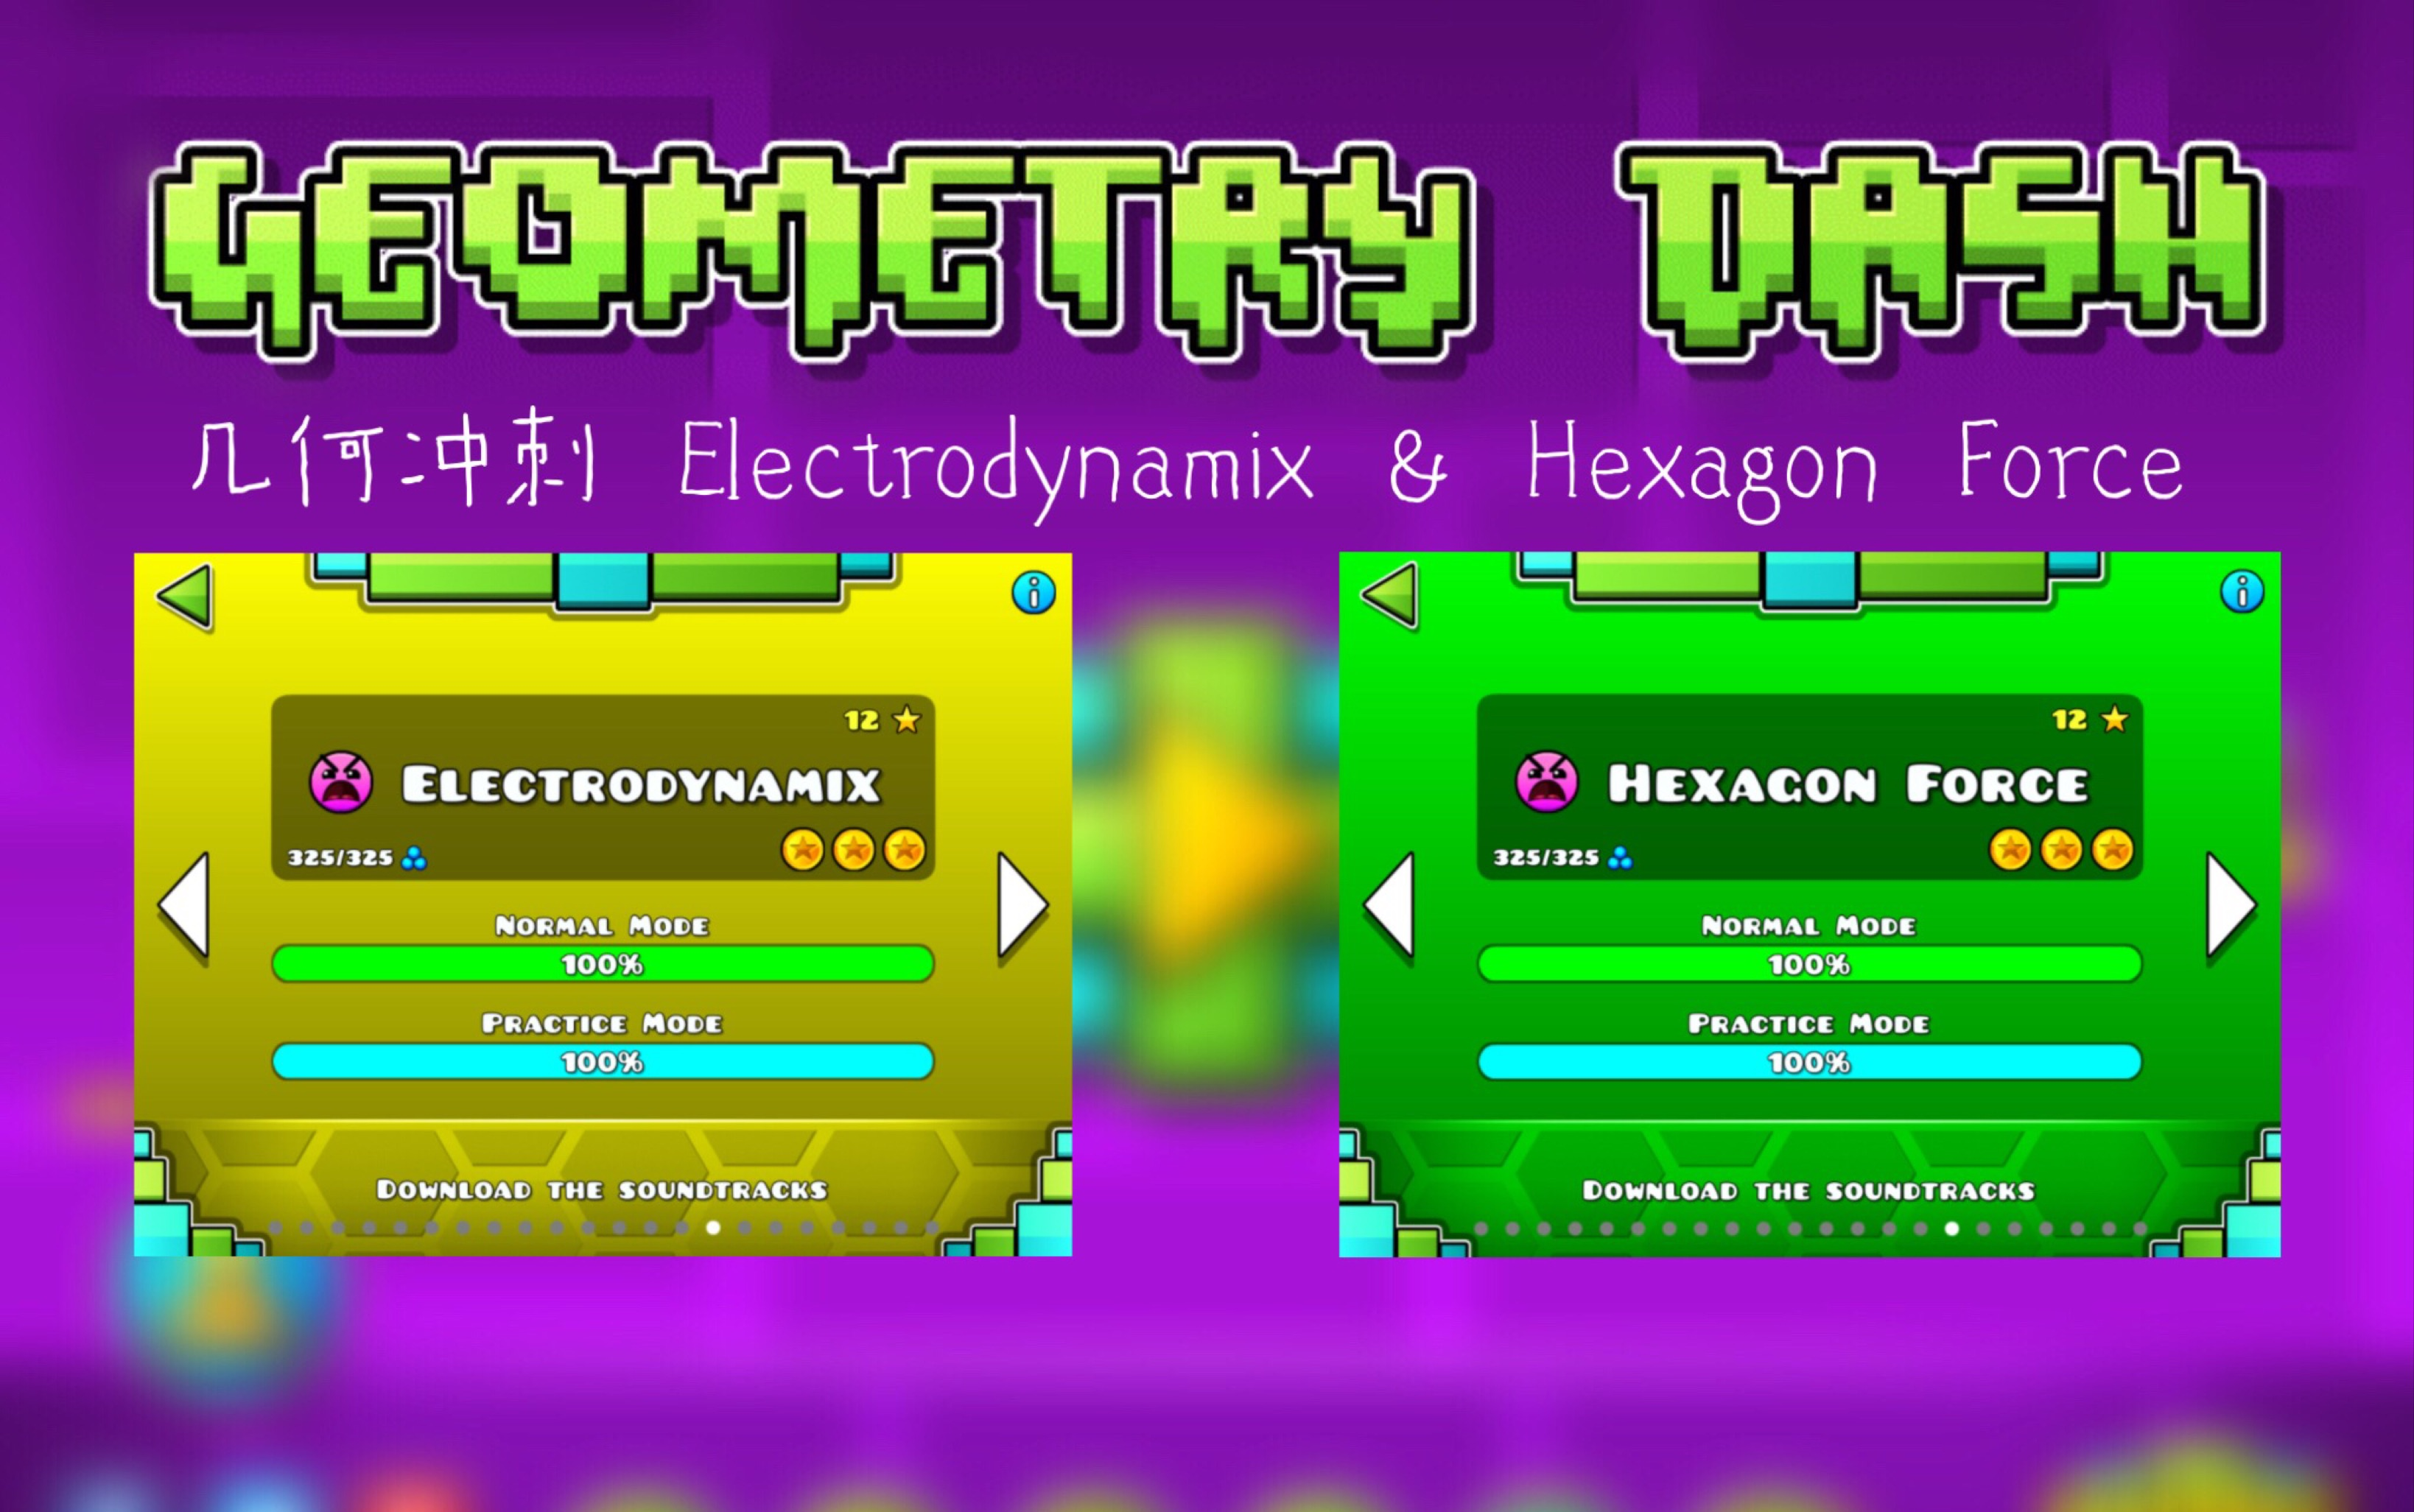 几何冲刺Geometry Dash】Electrodynamix & Hexagon Force_哔哩哔哩(゜-゜